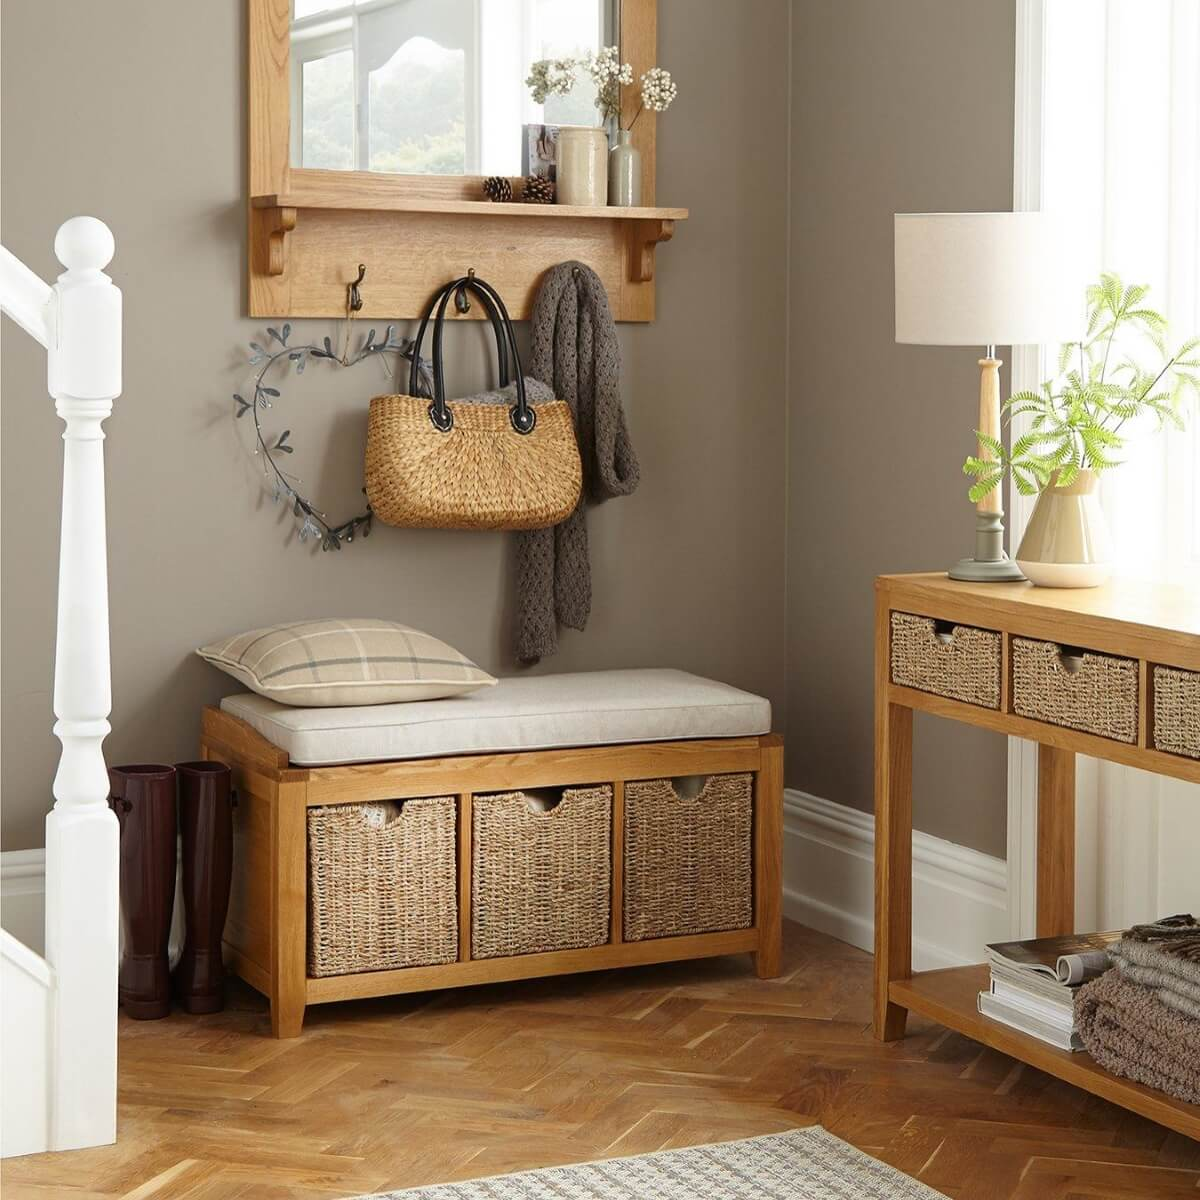 Oak storage bench with 3 baskets